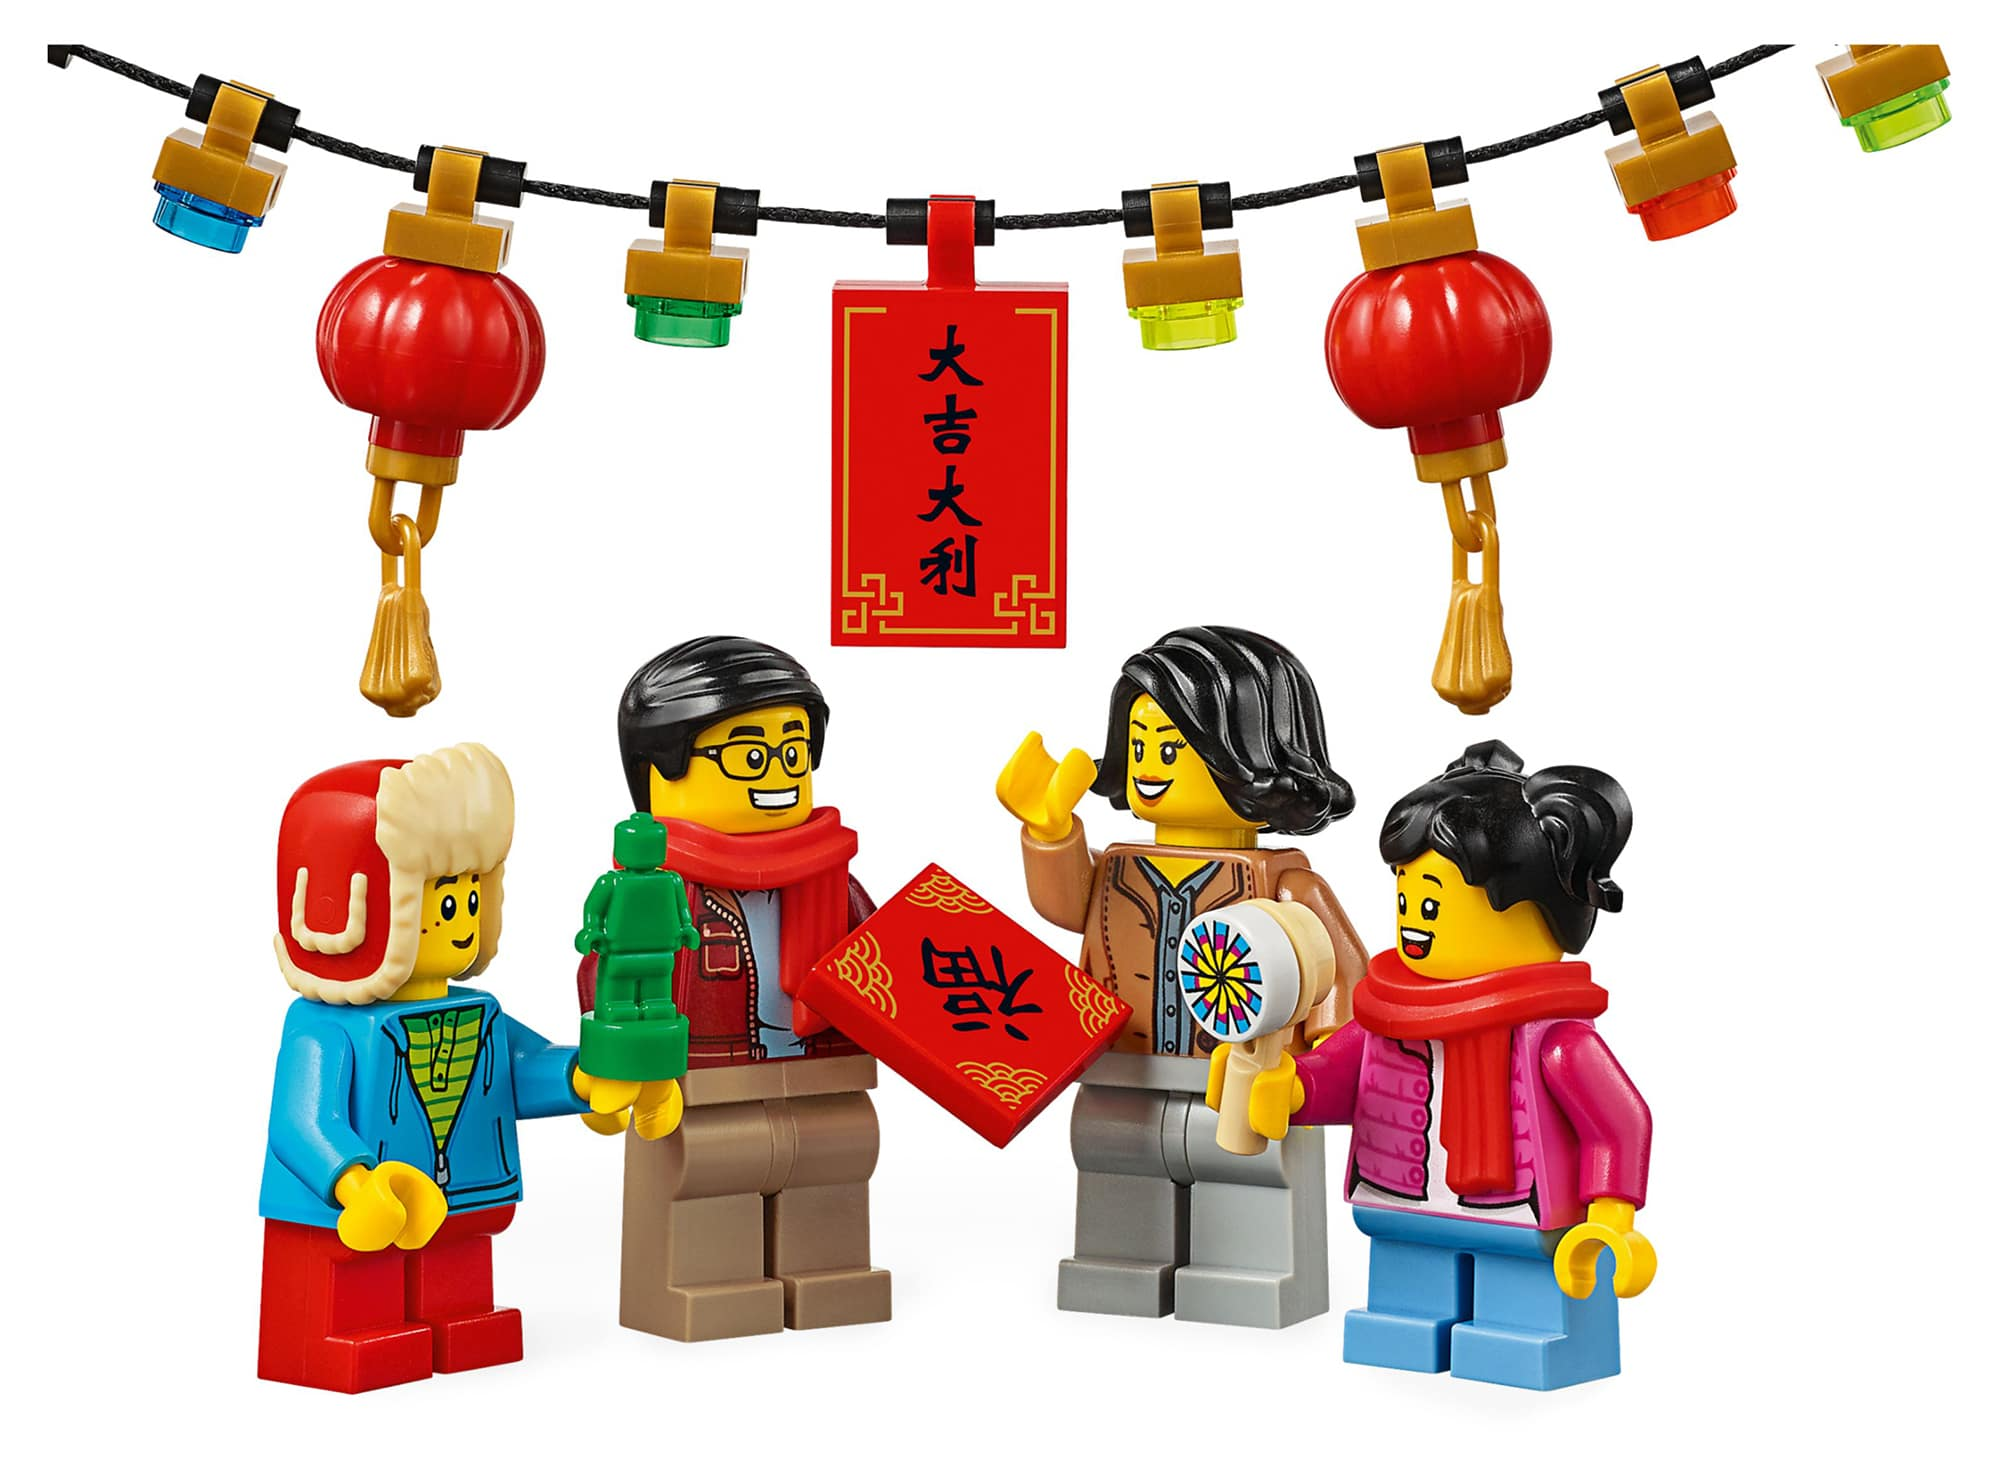 LEGO 80105 Temple Fair images